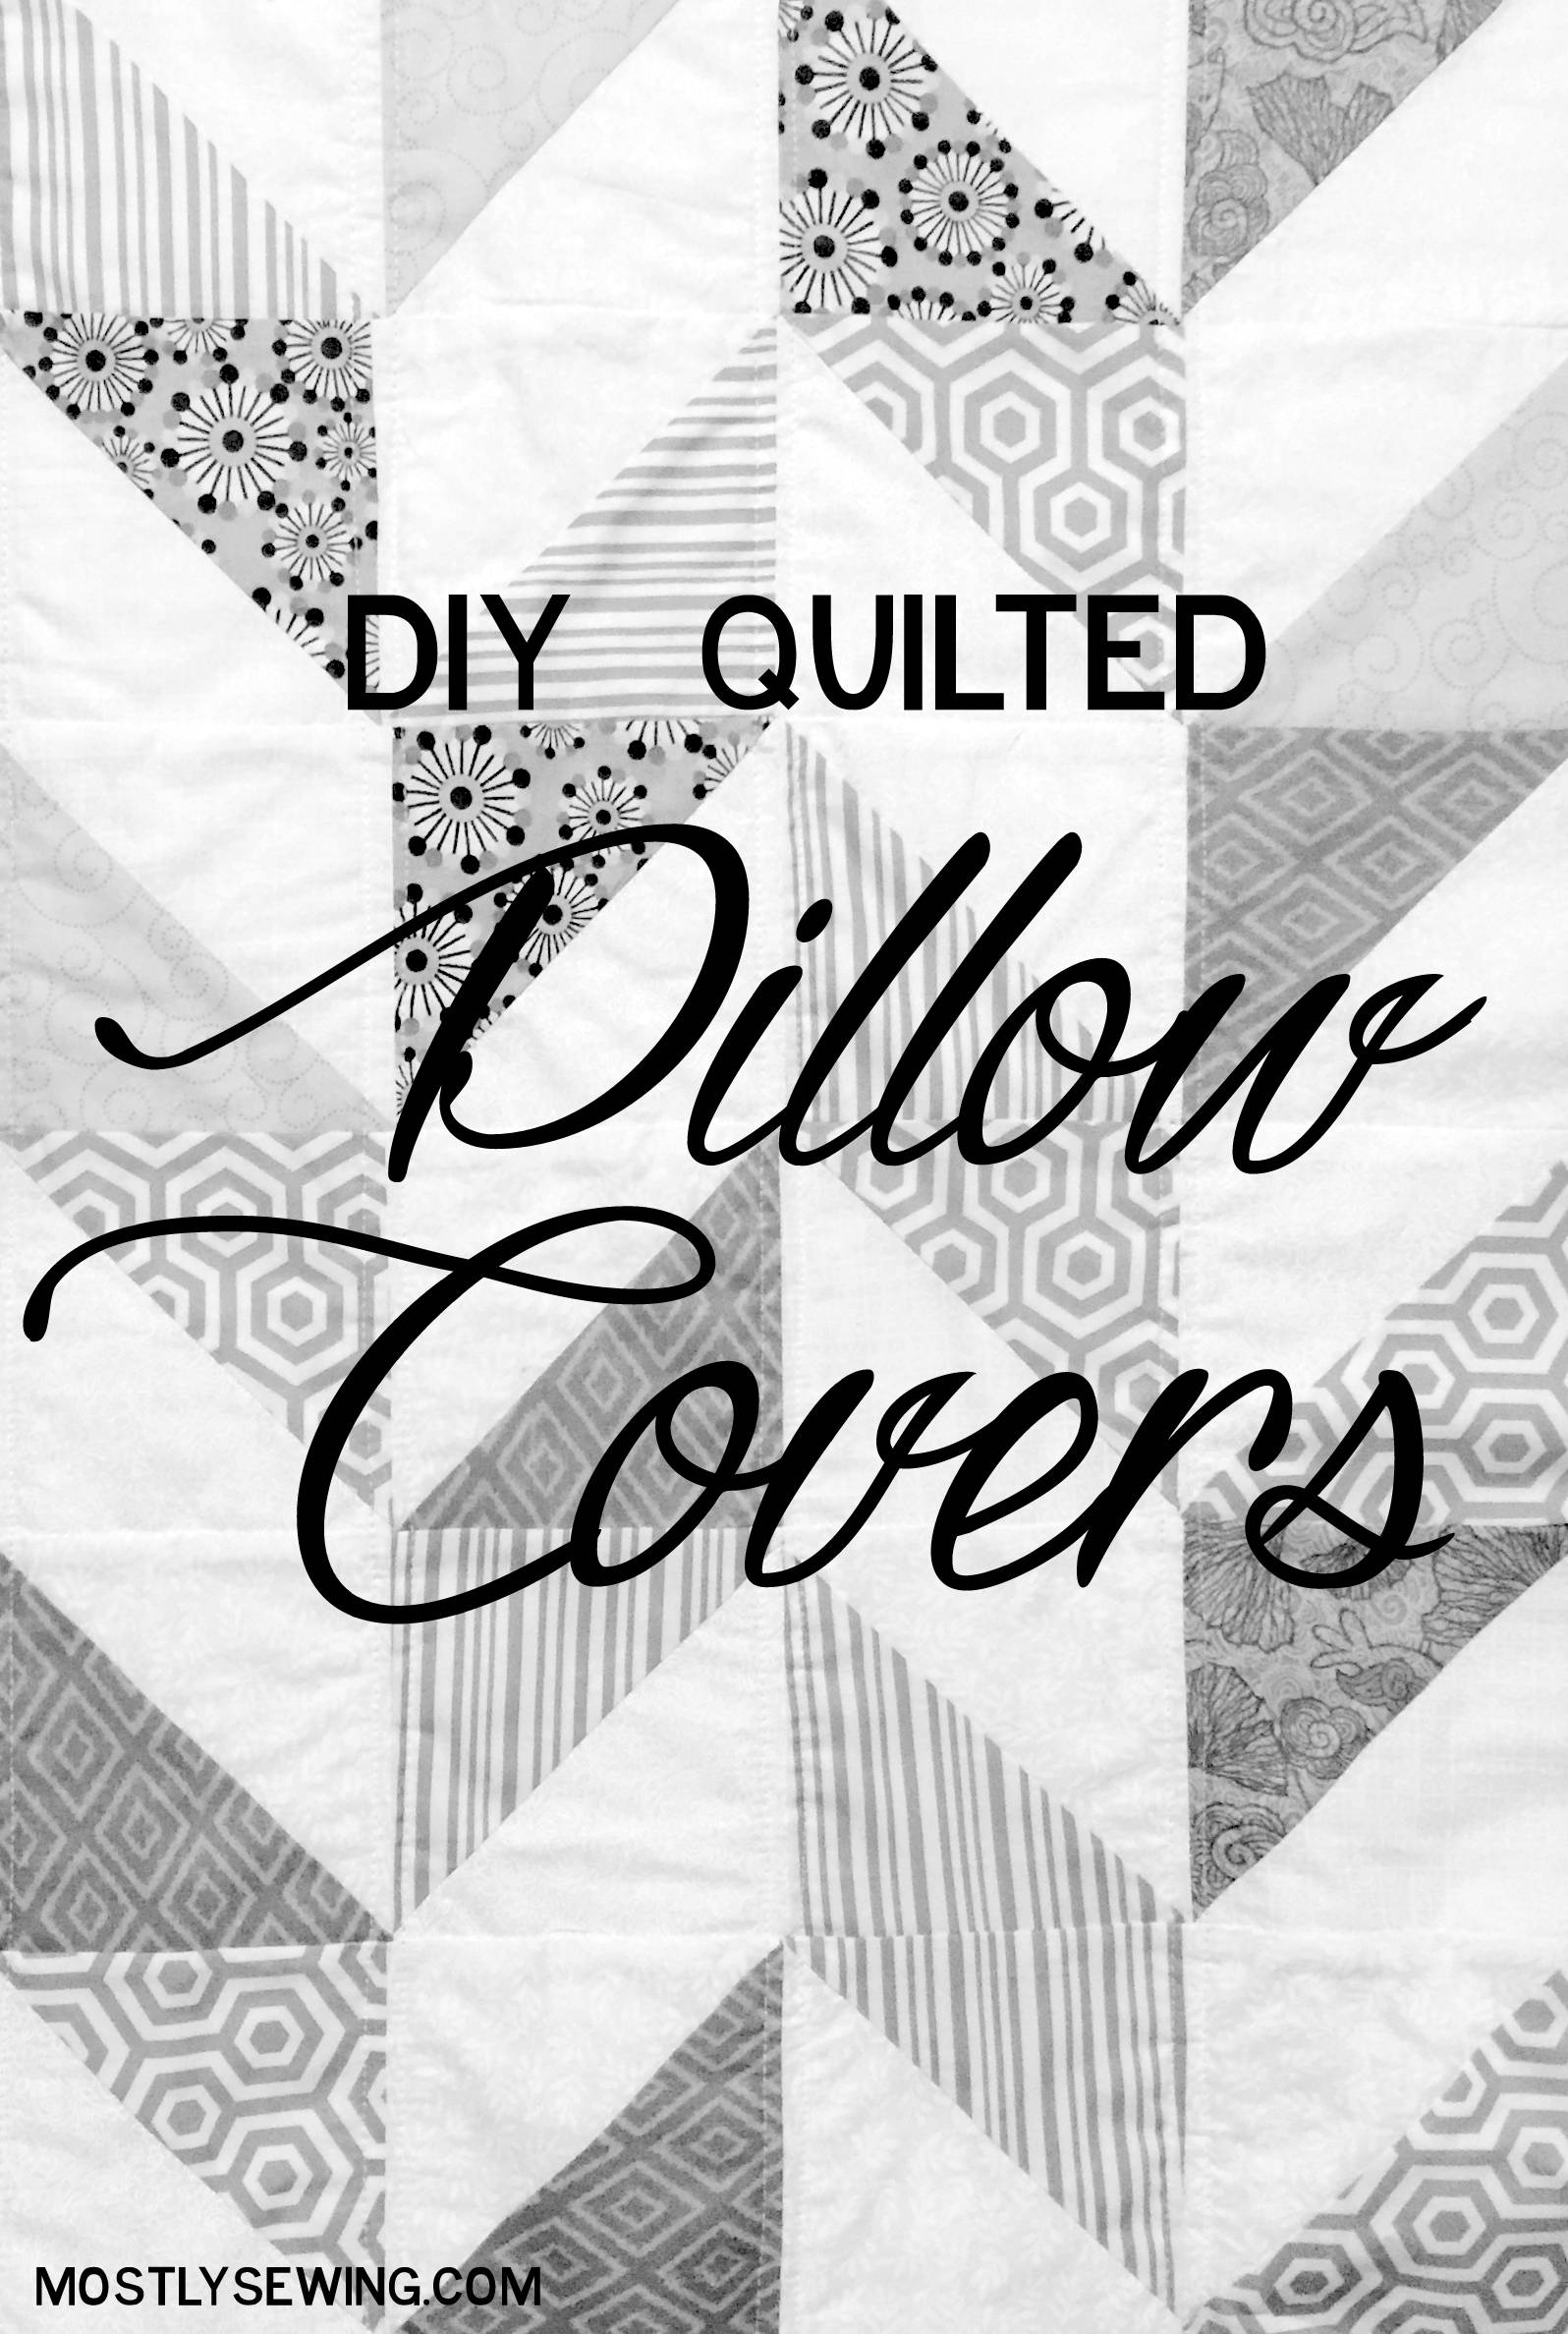 DIY Simple quilted pillow cover tutorial